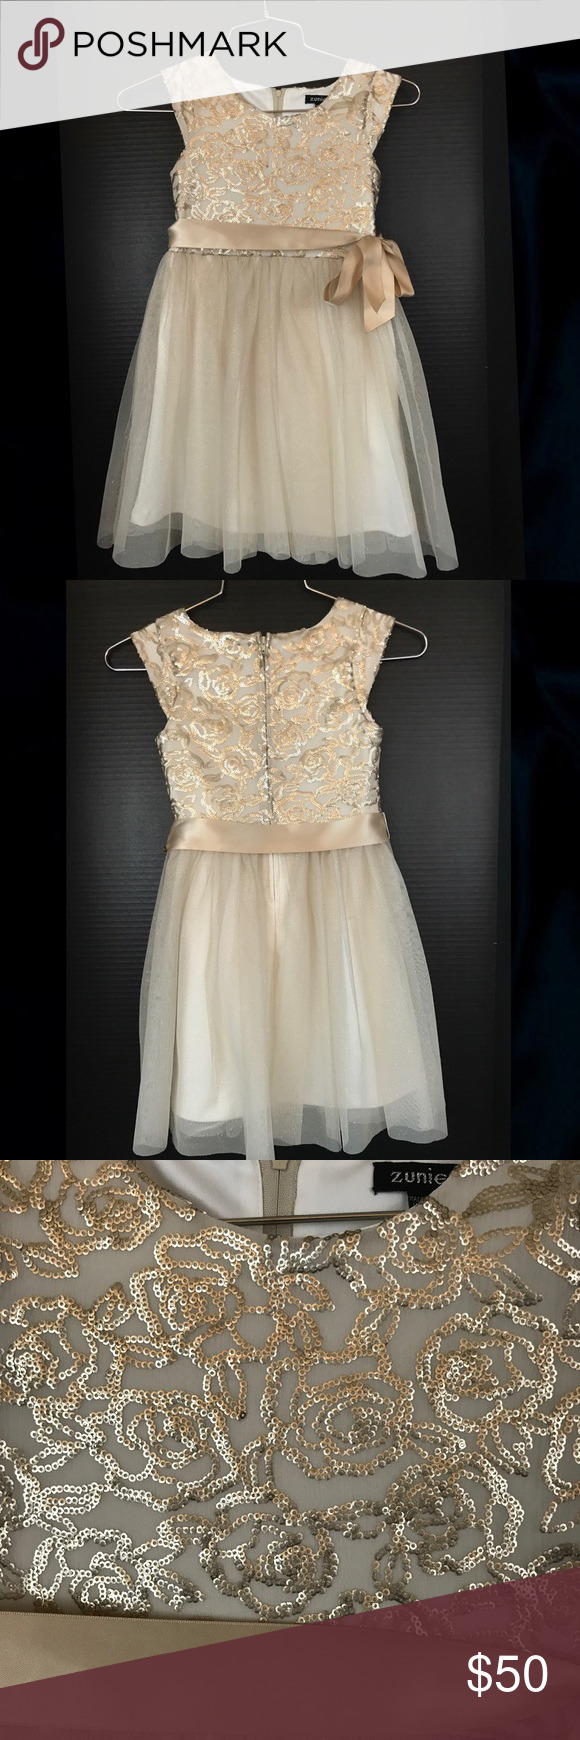 Gorgeous gold holiday dress ribbon belt gold ribbons and gold glitter